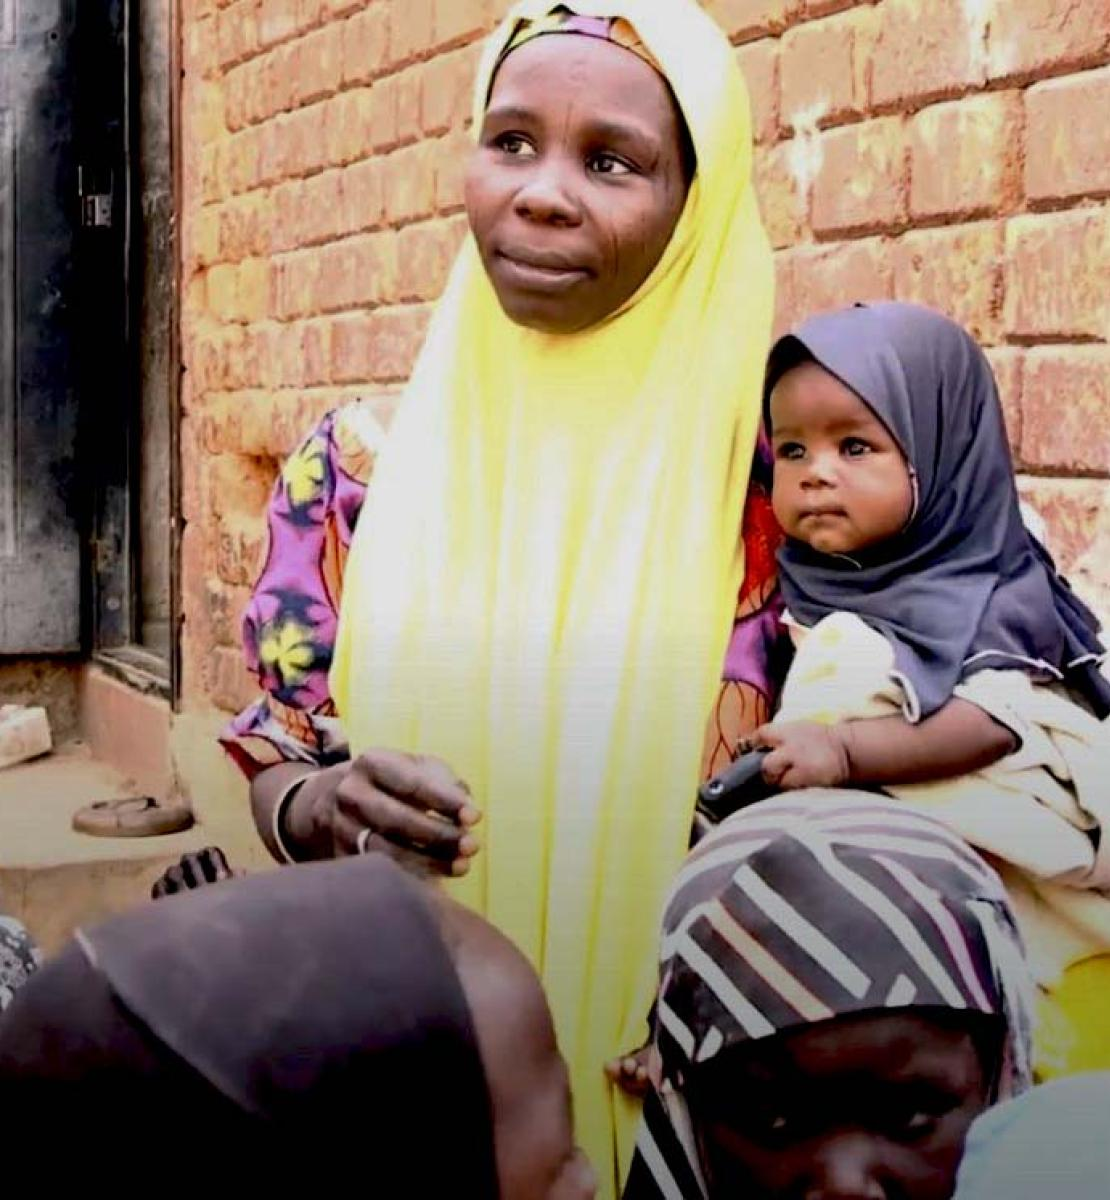 A woman in a yellow hijab holds a baby in her arms as she speaks to other women.